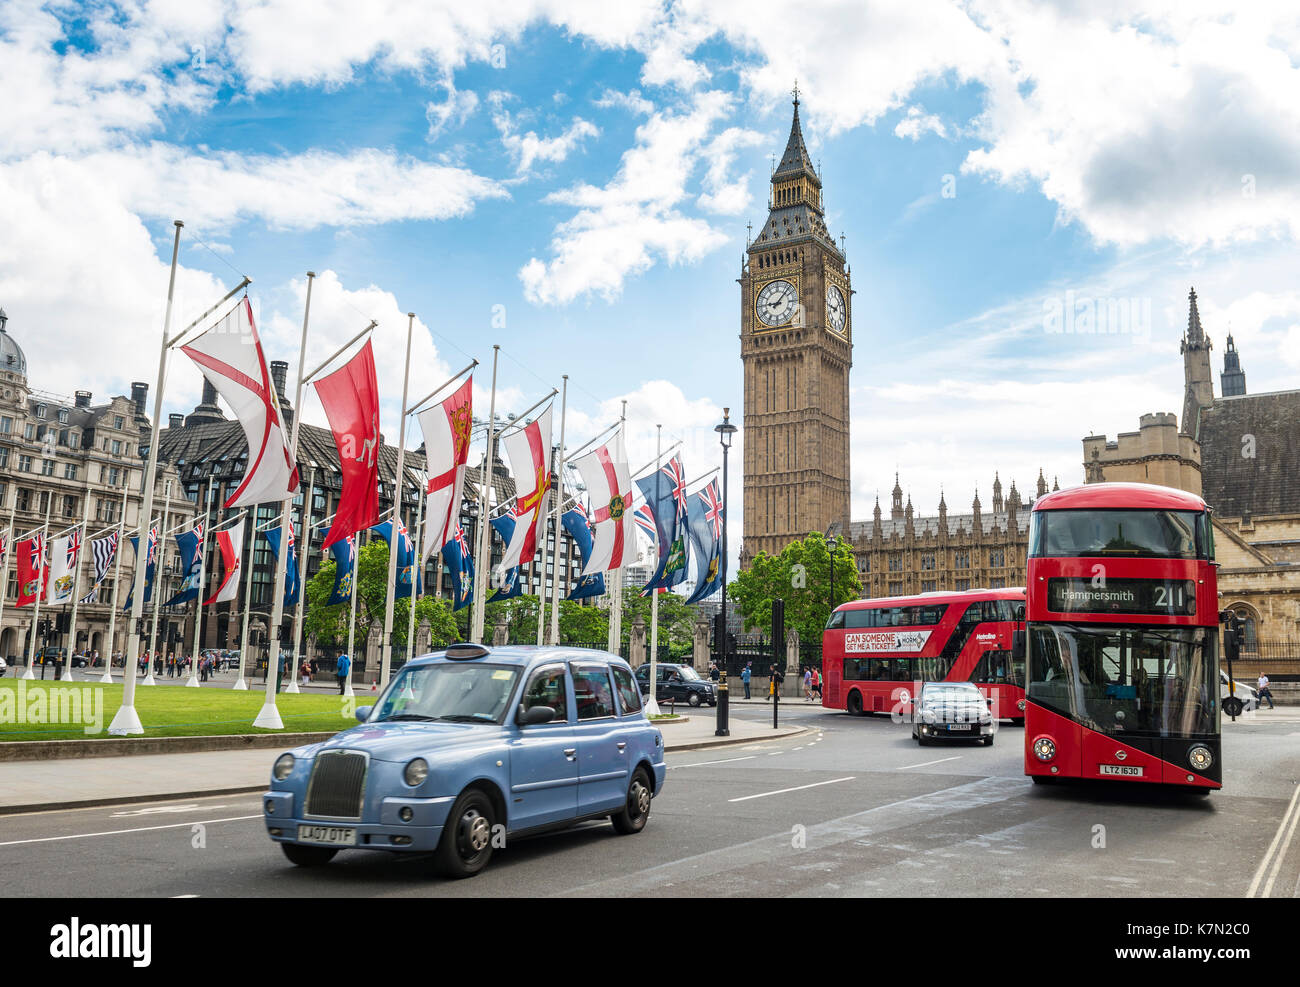 Taxi and red double-decker bus, Big Ben with Westminster Palace, London, England, Great Britain - Stock Image